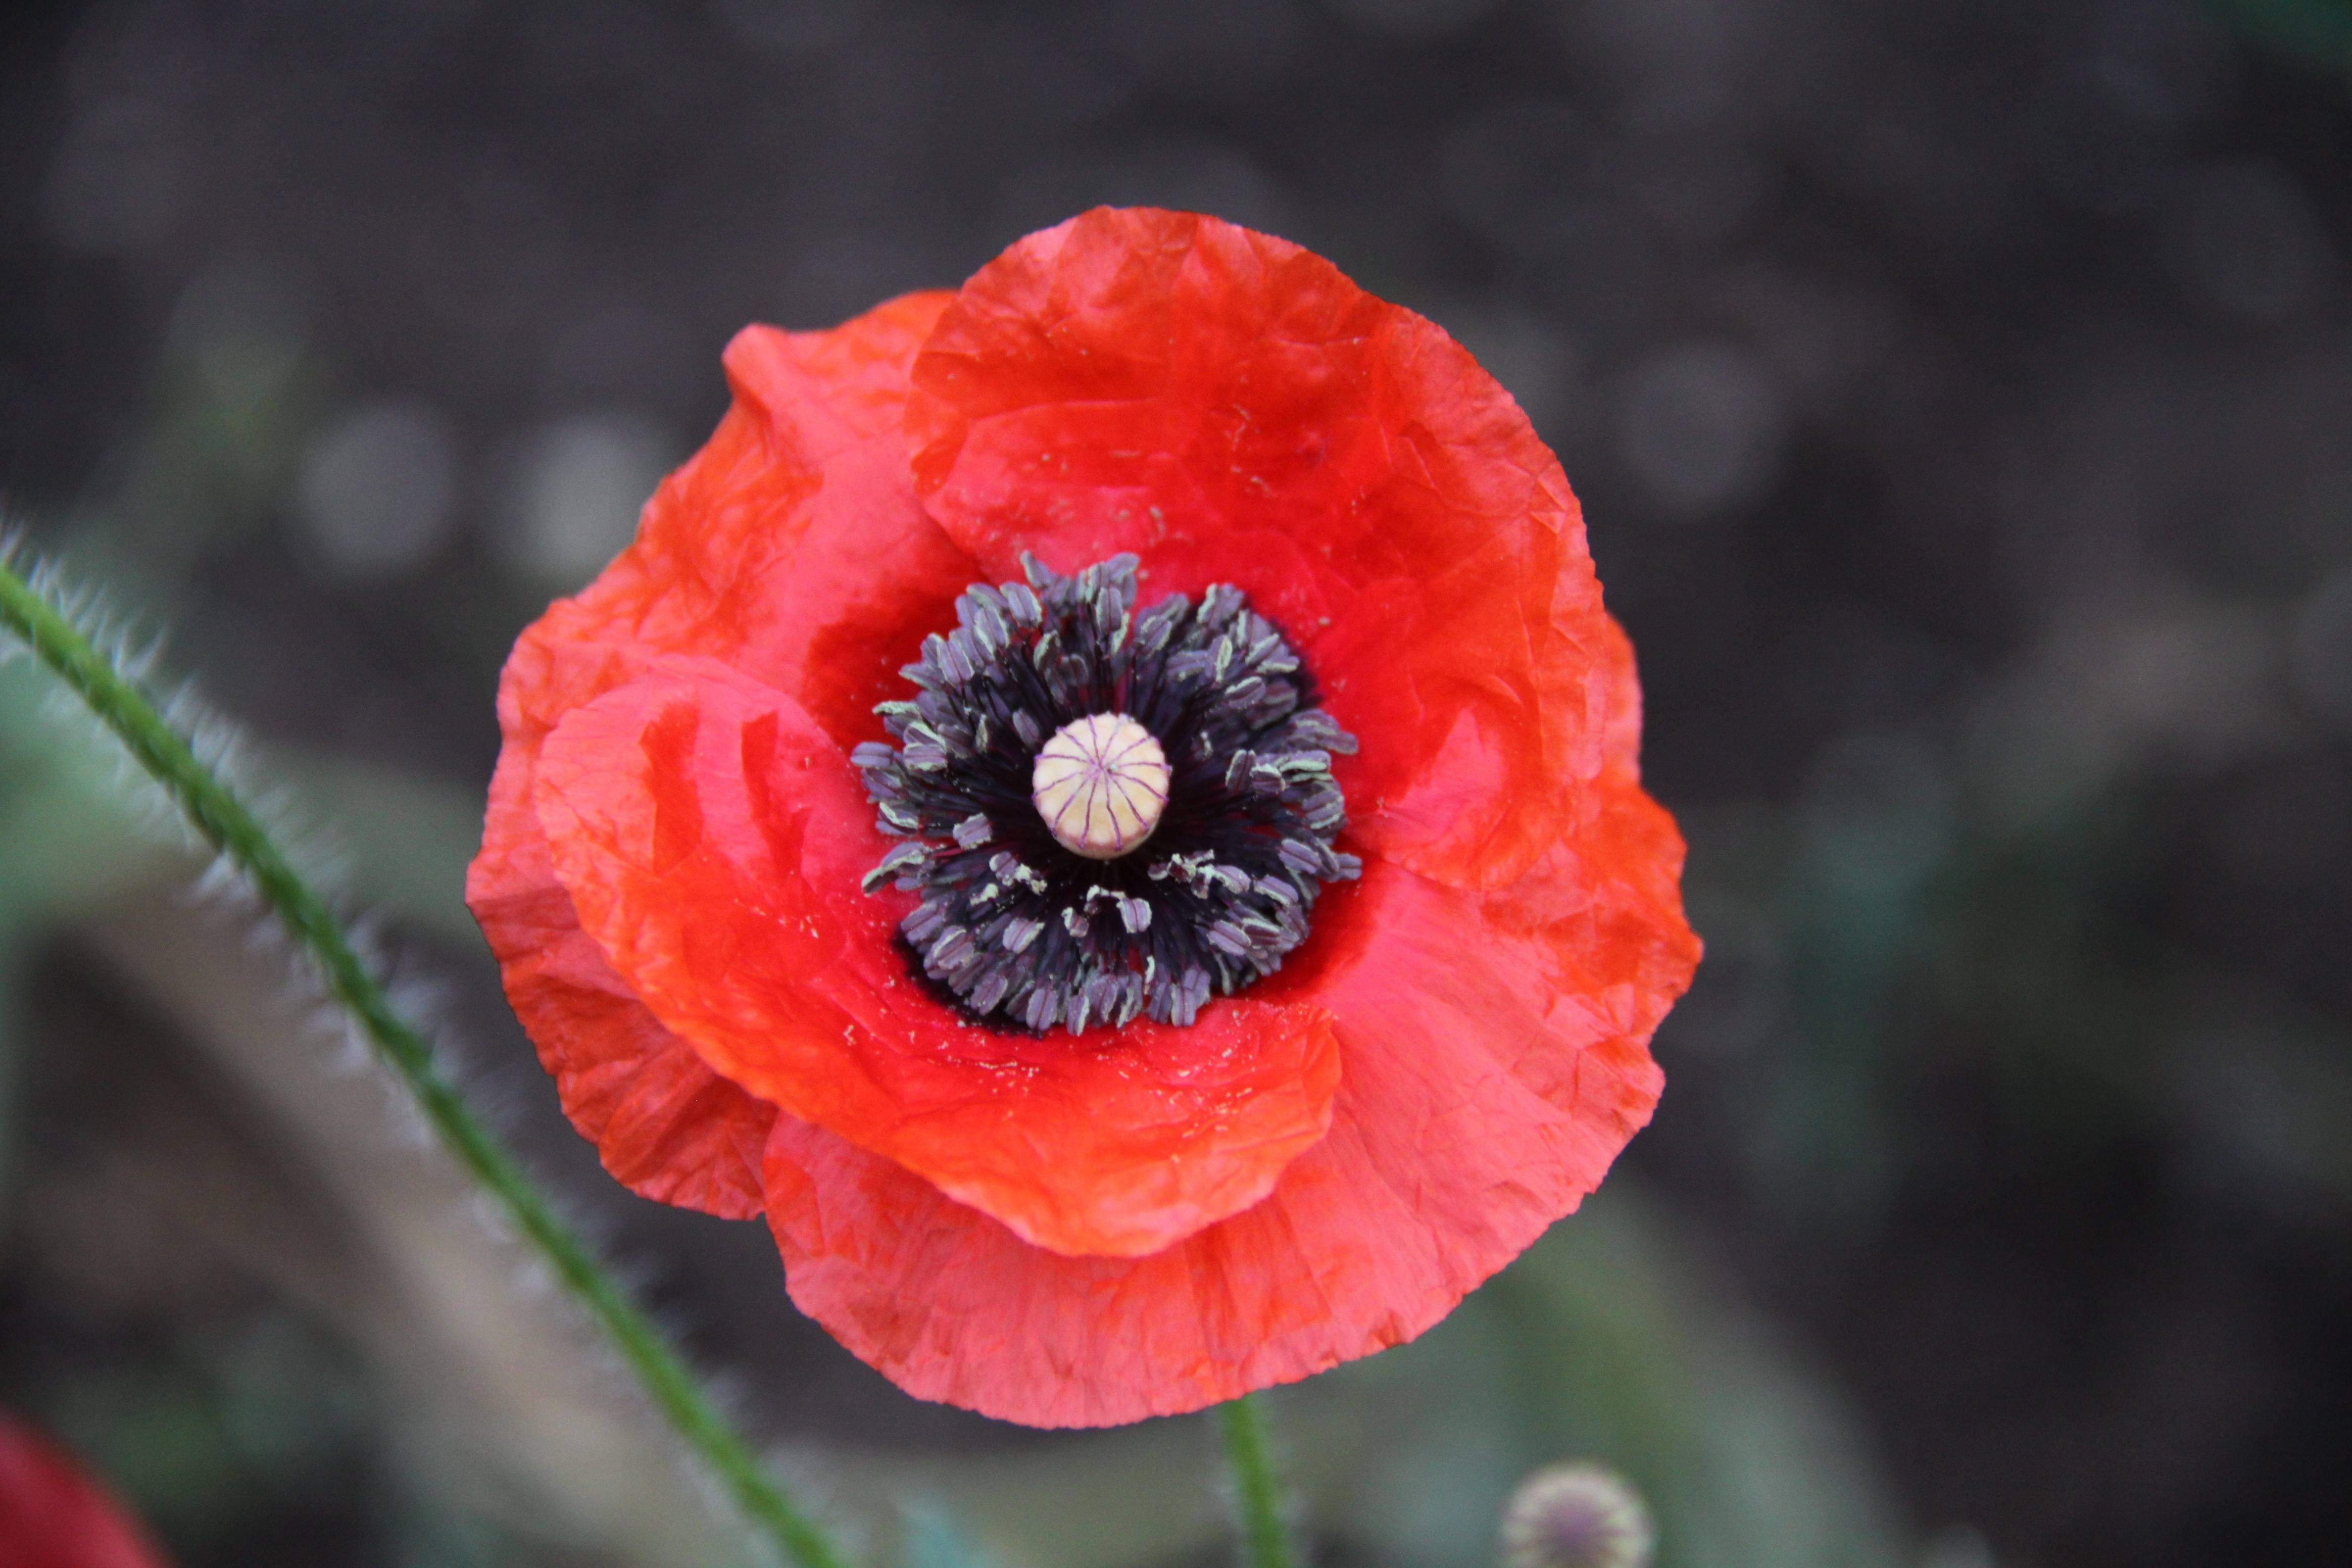 Red poppies and ethical storytelling